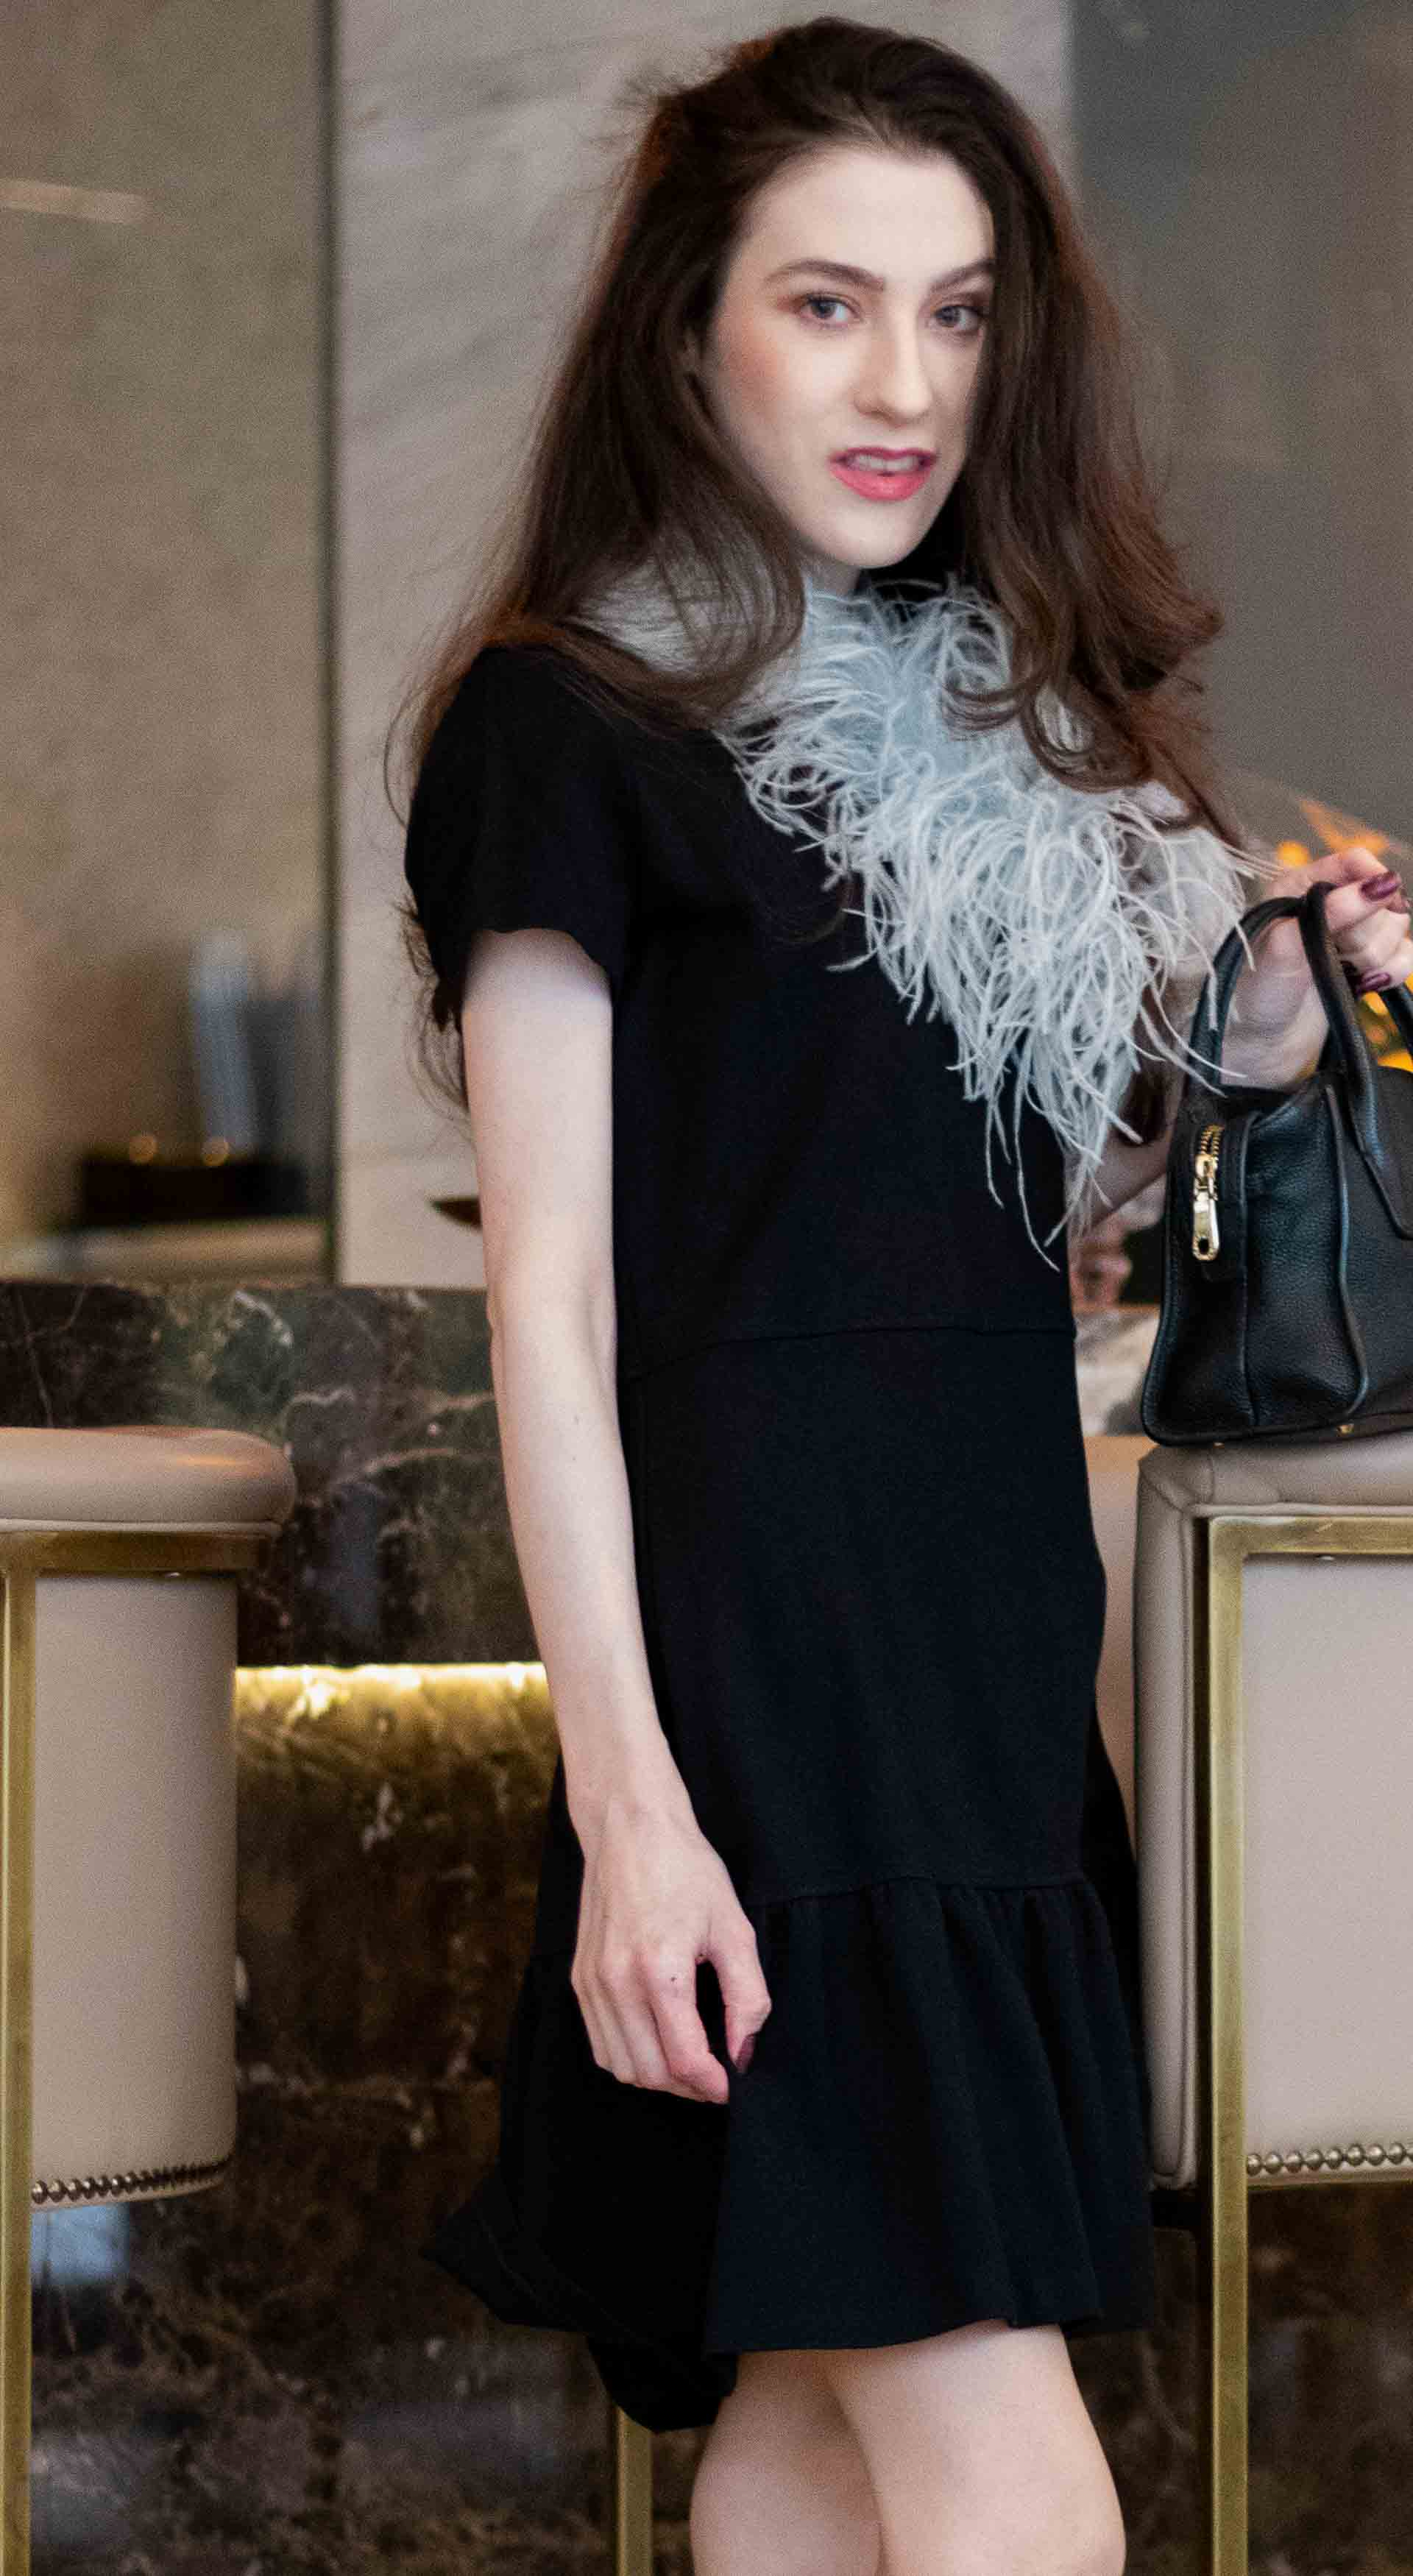 994ce32ed4812 Popular Fashion Blogger Veronika Lipar of Brunette from Wall Street wearing  short sleeve LBD with feathers